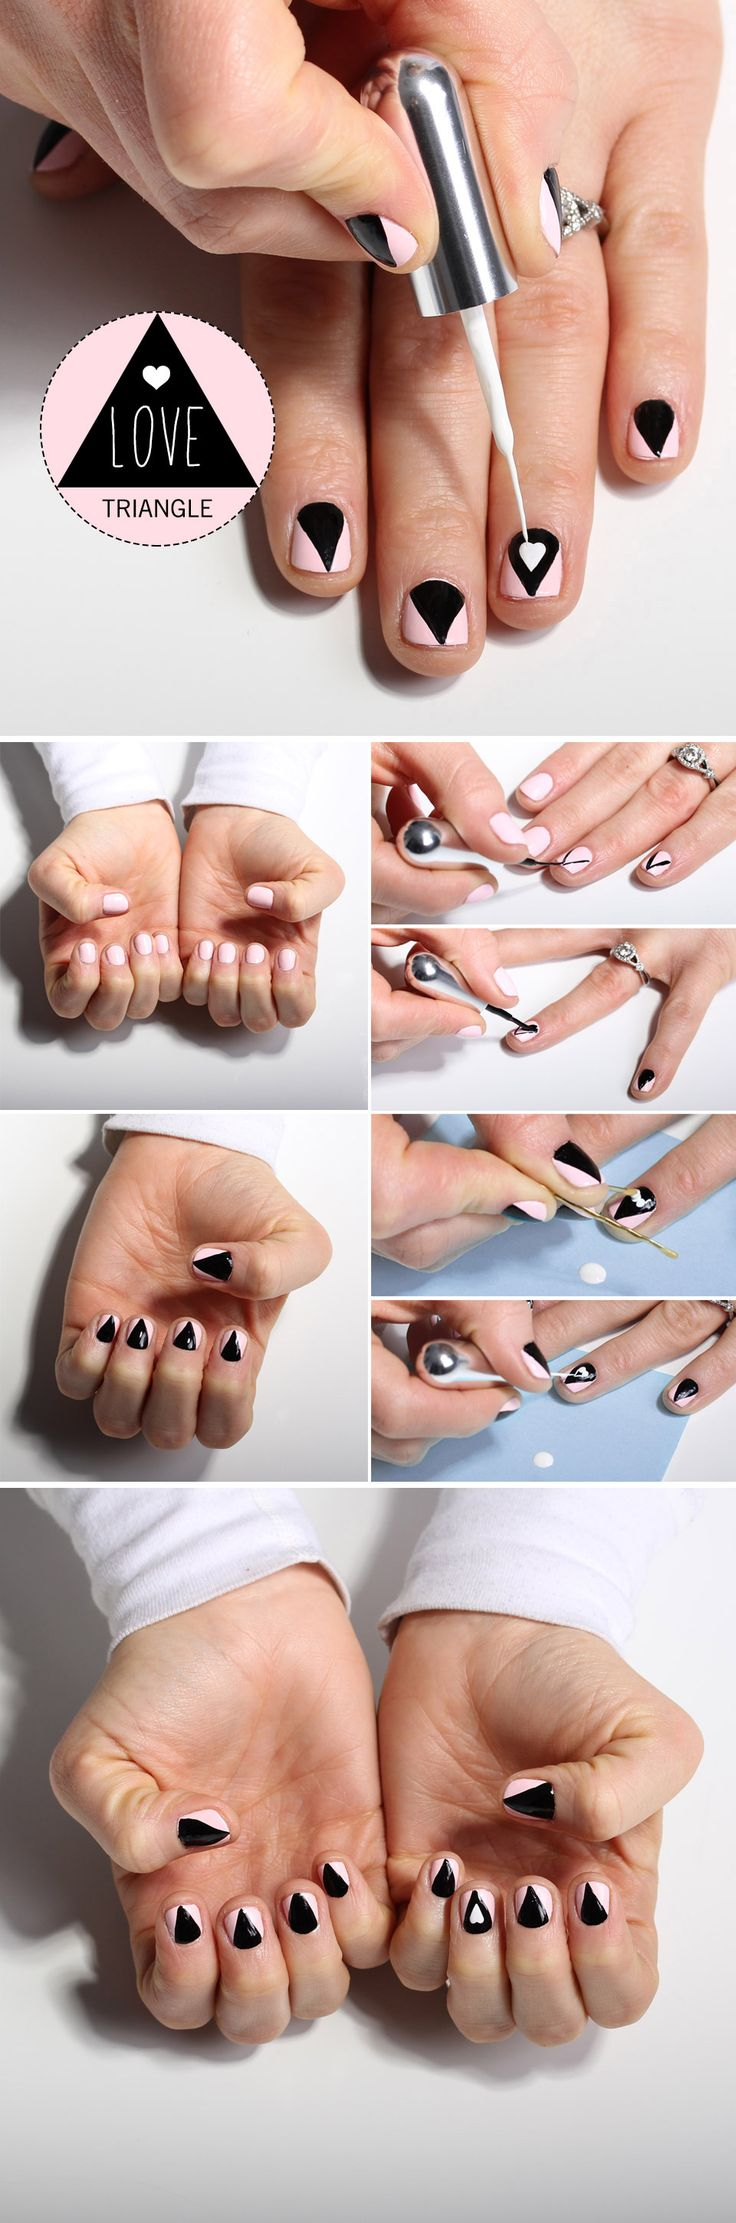 Piercing your nose at home   best Makeup u Nails images on Pinterest  Beauty makeup